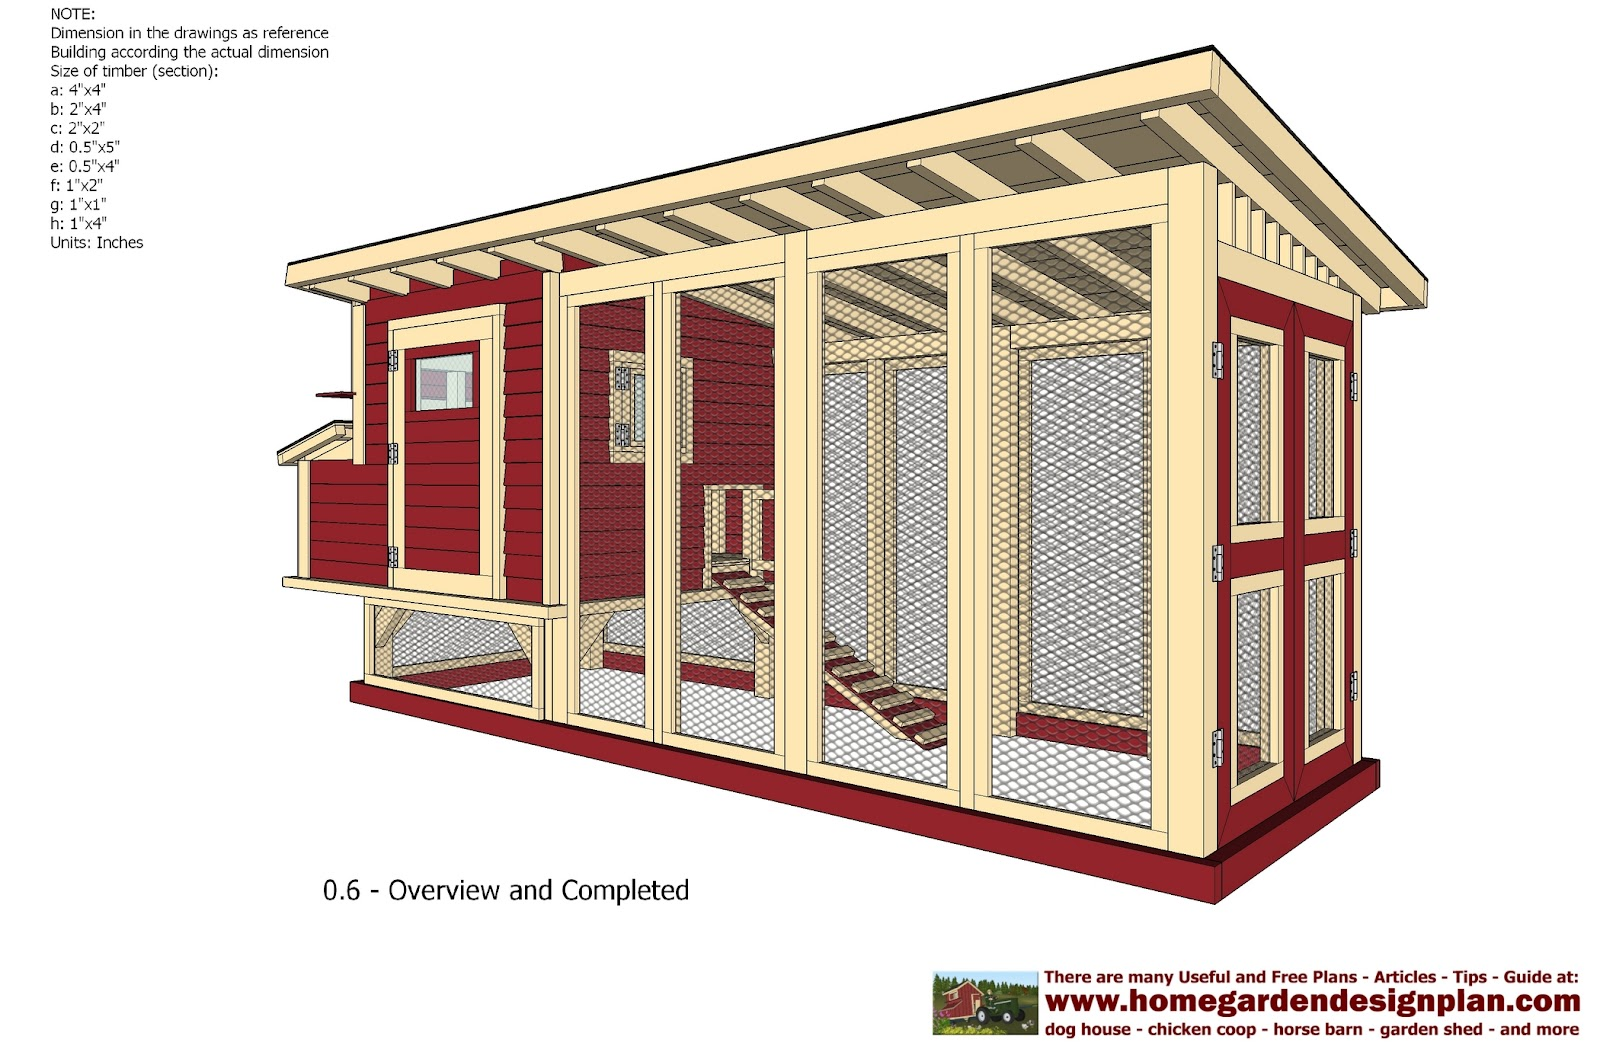 Just coop pvc chicken coop plans pdf for Free coop plans